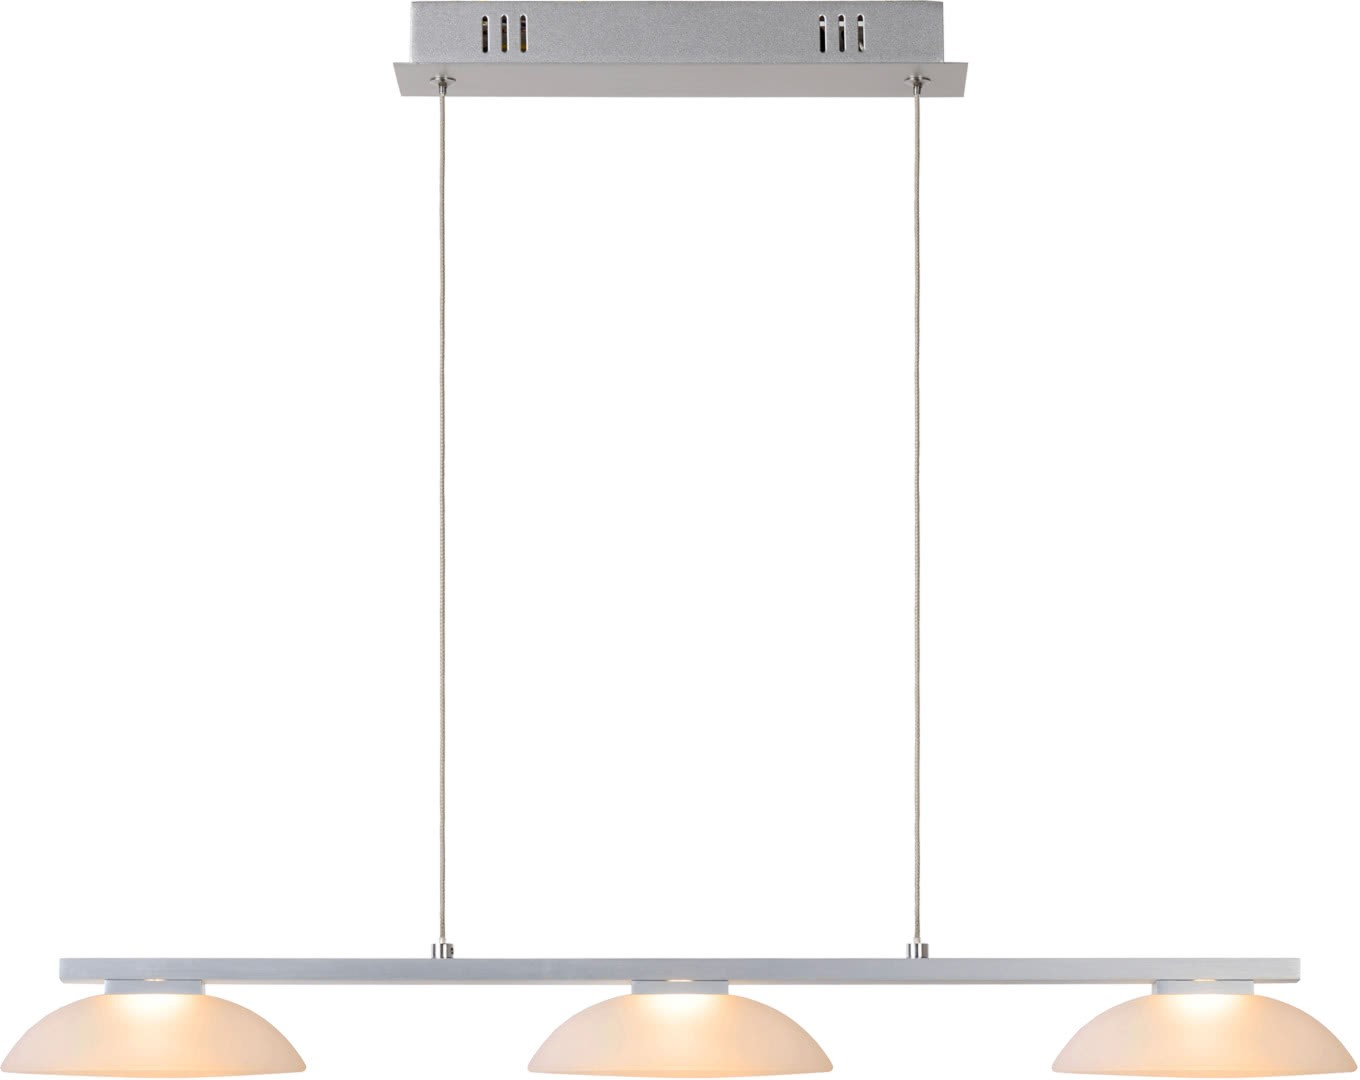 Suspension moderne led grise 3 points lumineux Birdy